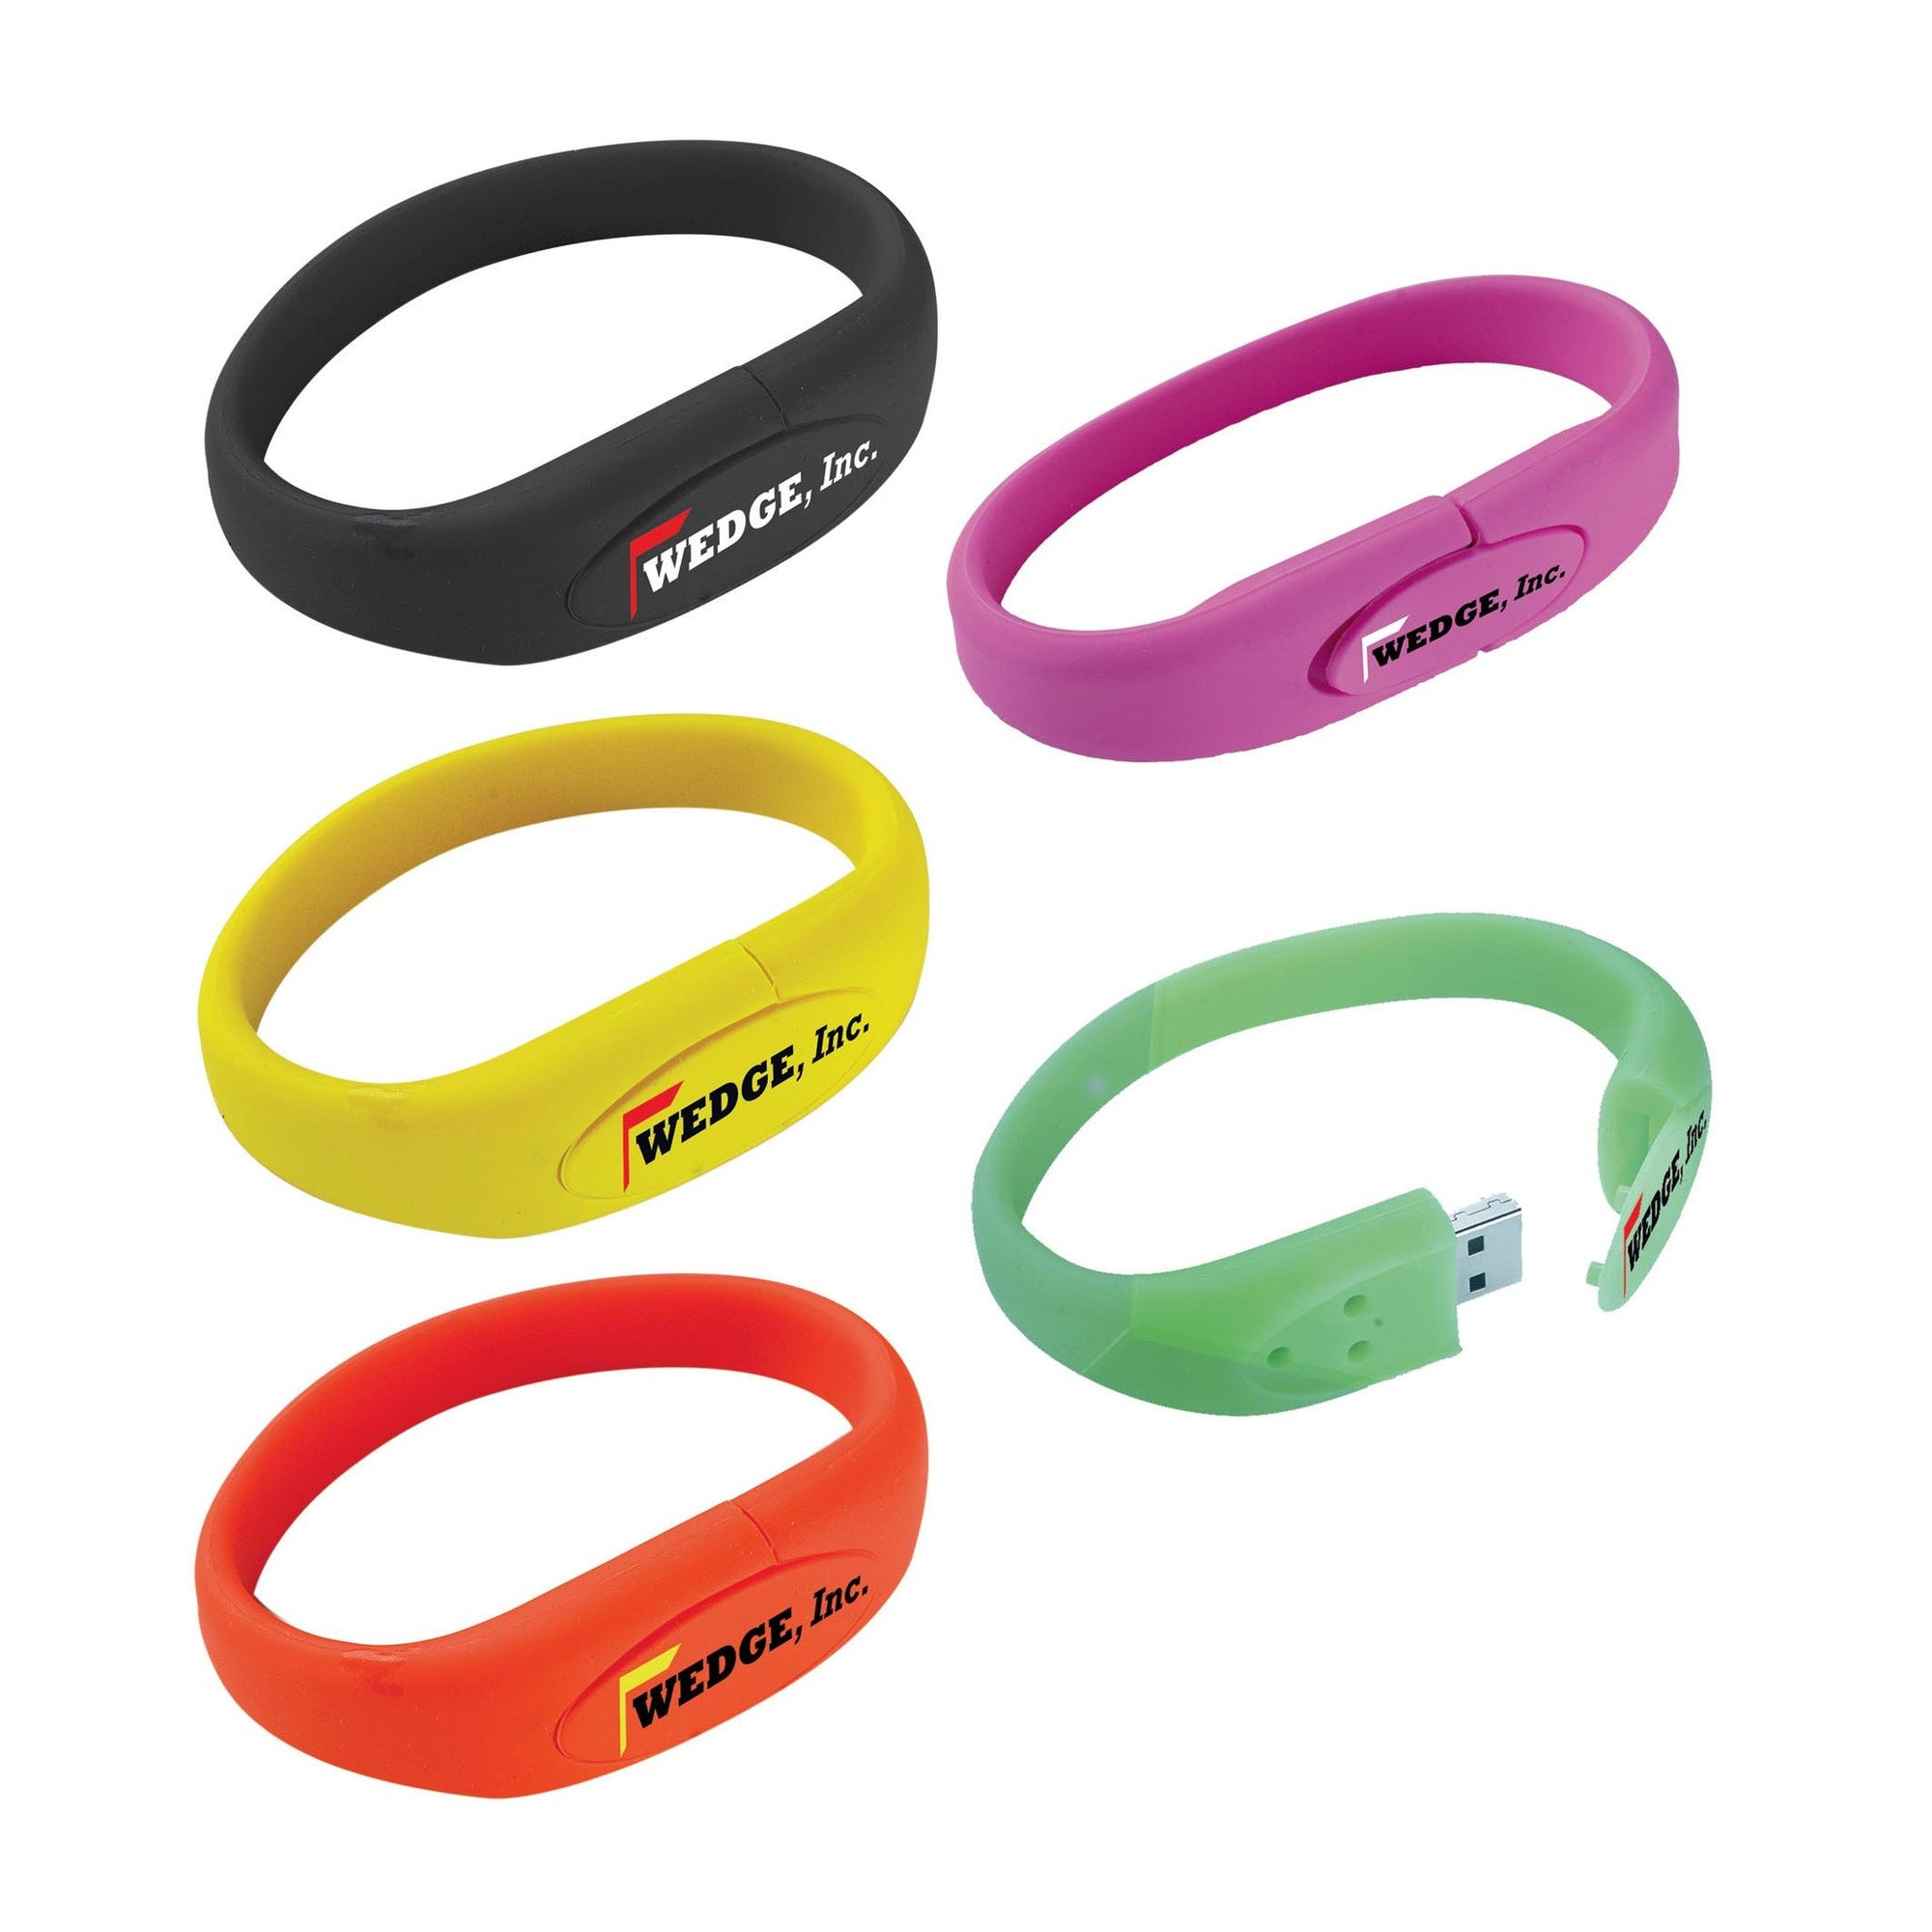 Bracelet USB 2.0 Flash Drive(SUSB-02) - greenpac.com.au